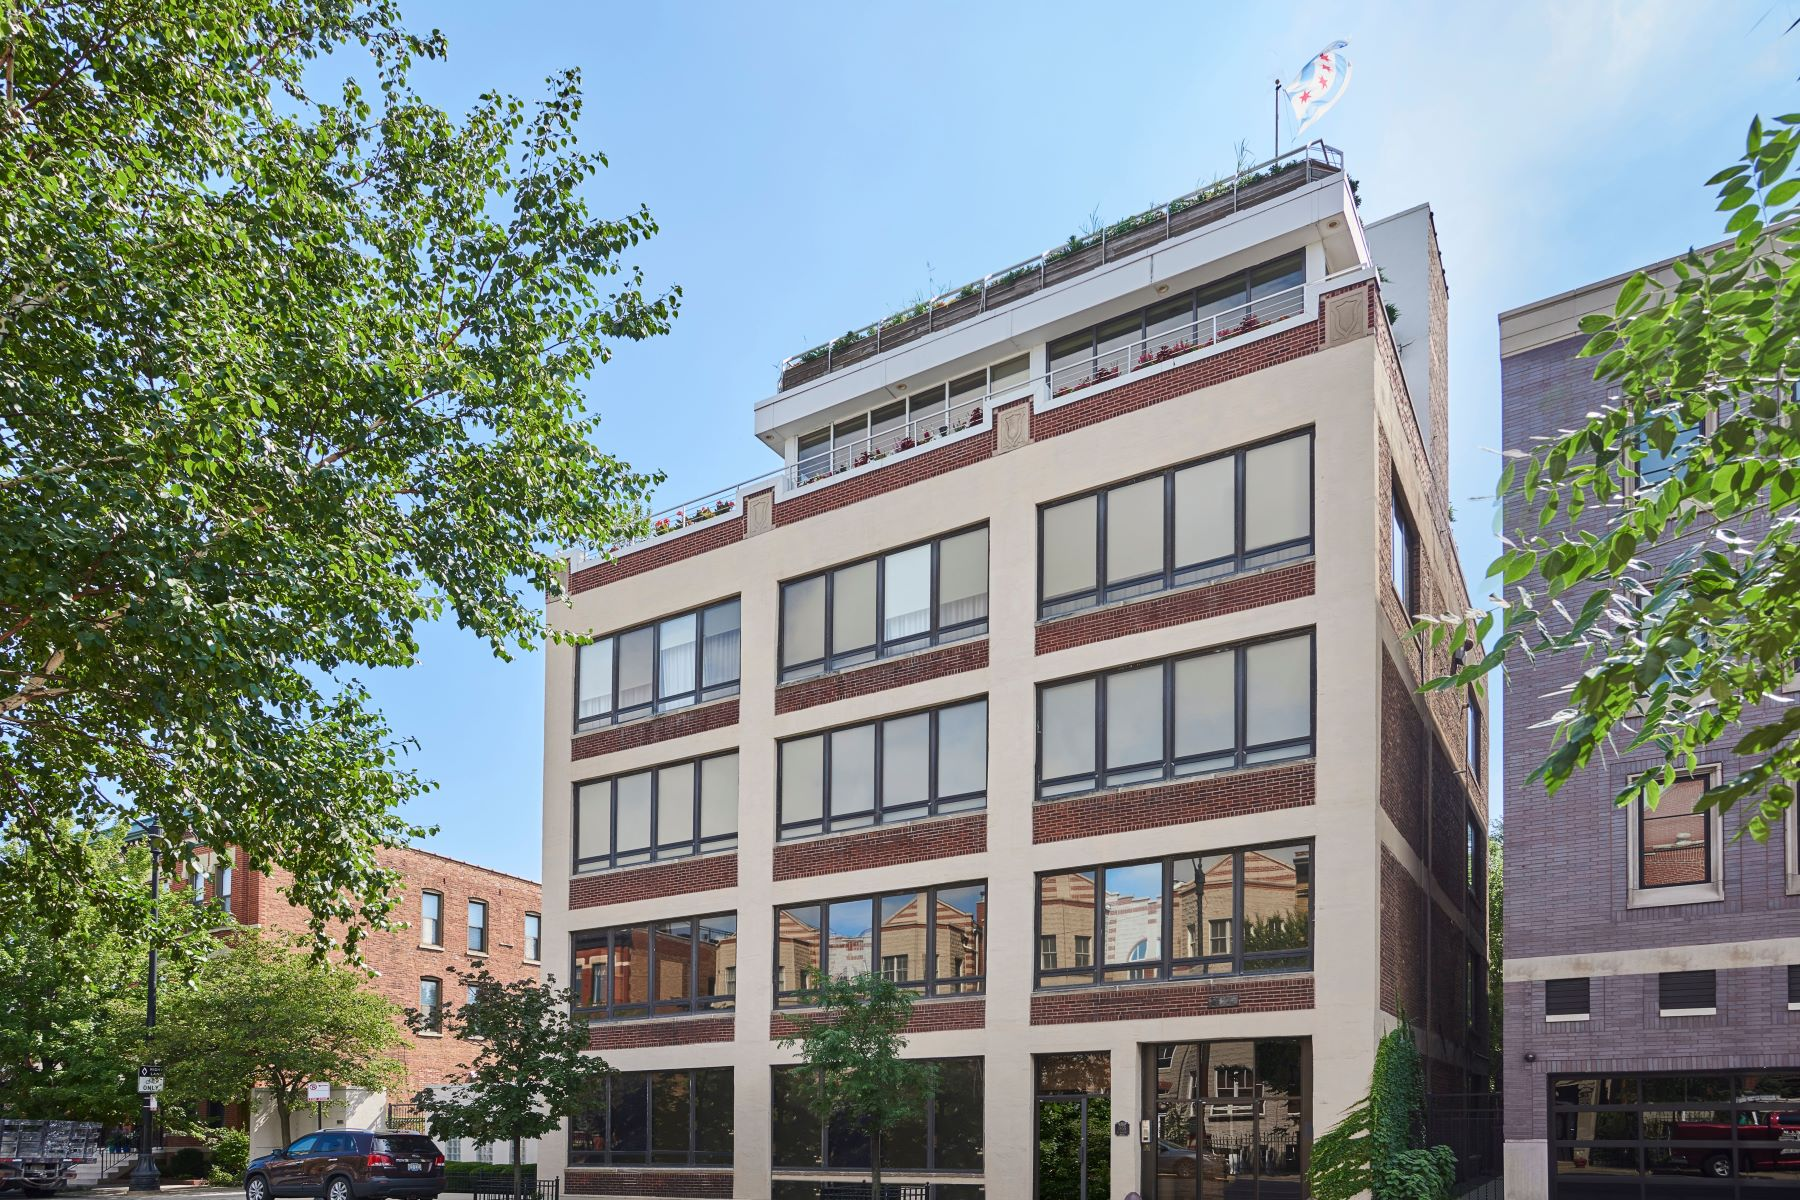 Property for Sale at Very Unique Loft 1855 N Halsted Street, Unit 2W Chicago, Illinois 60614 United States